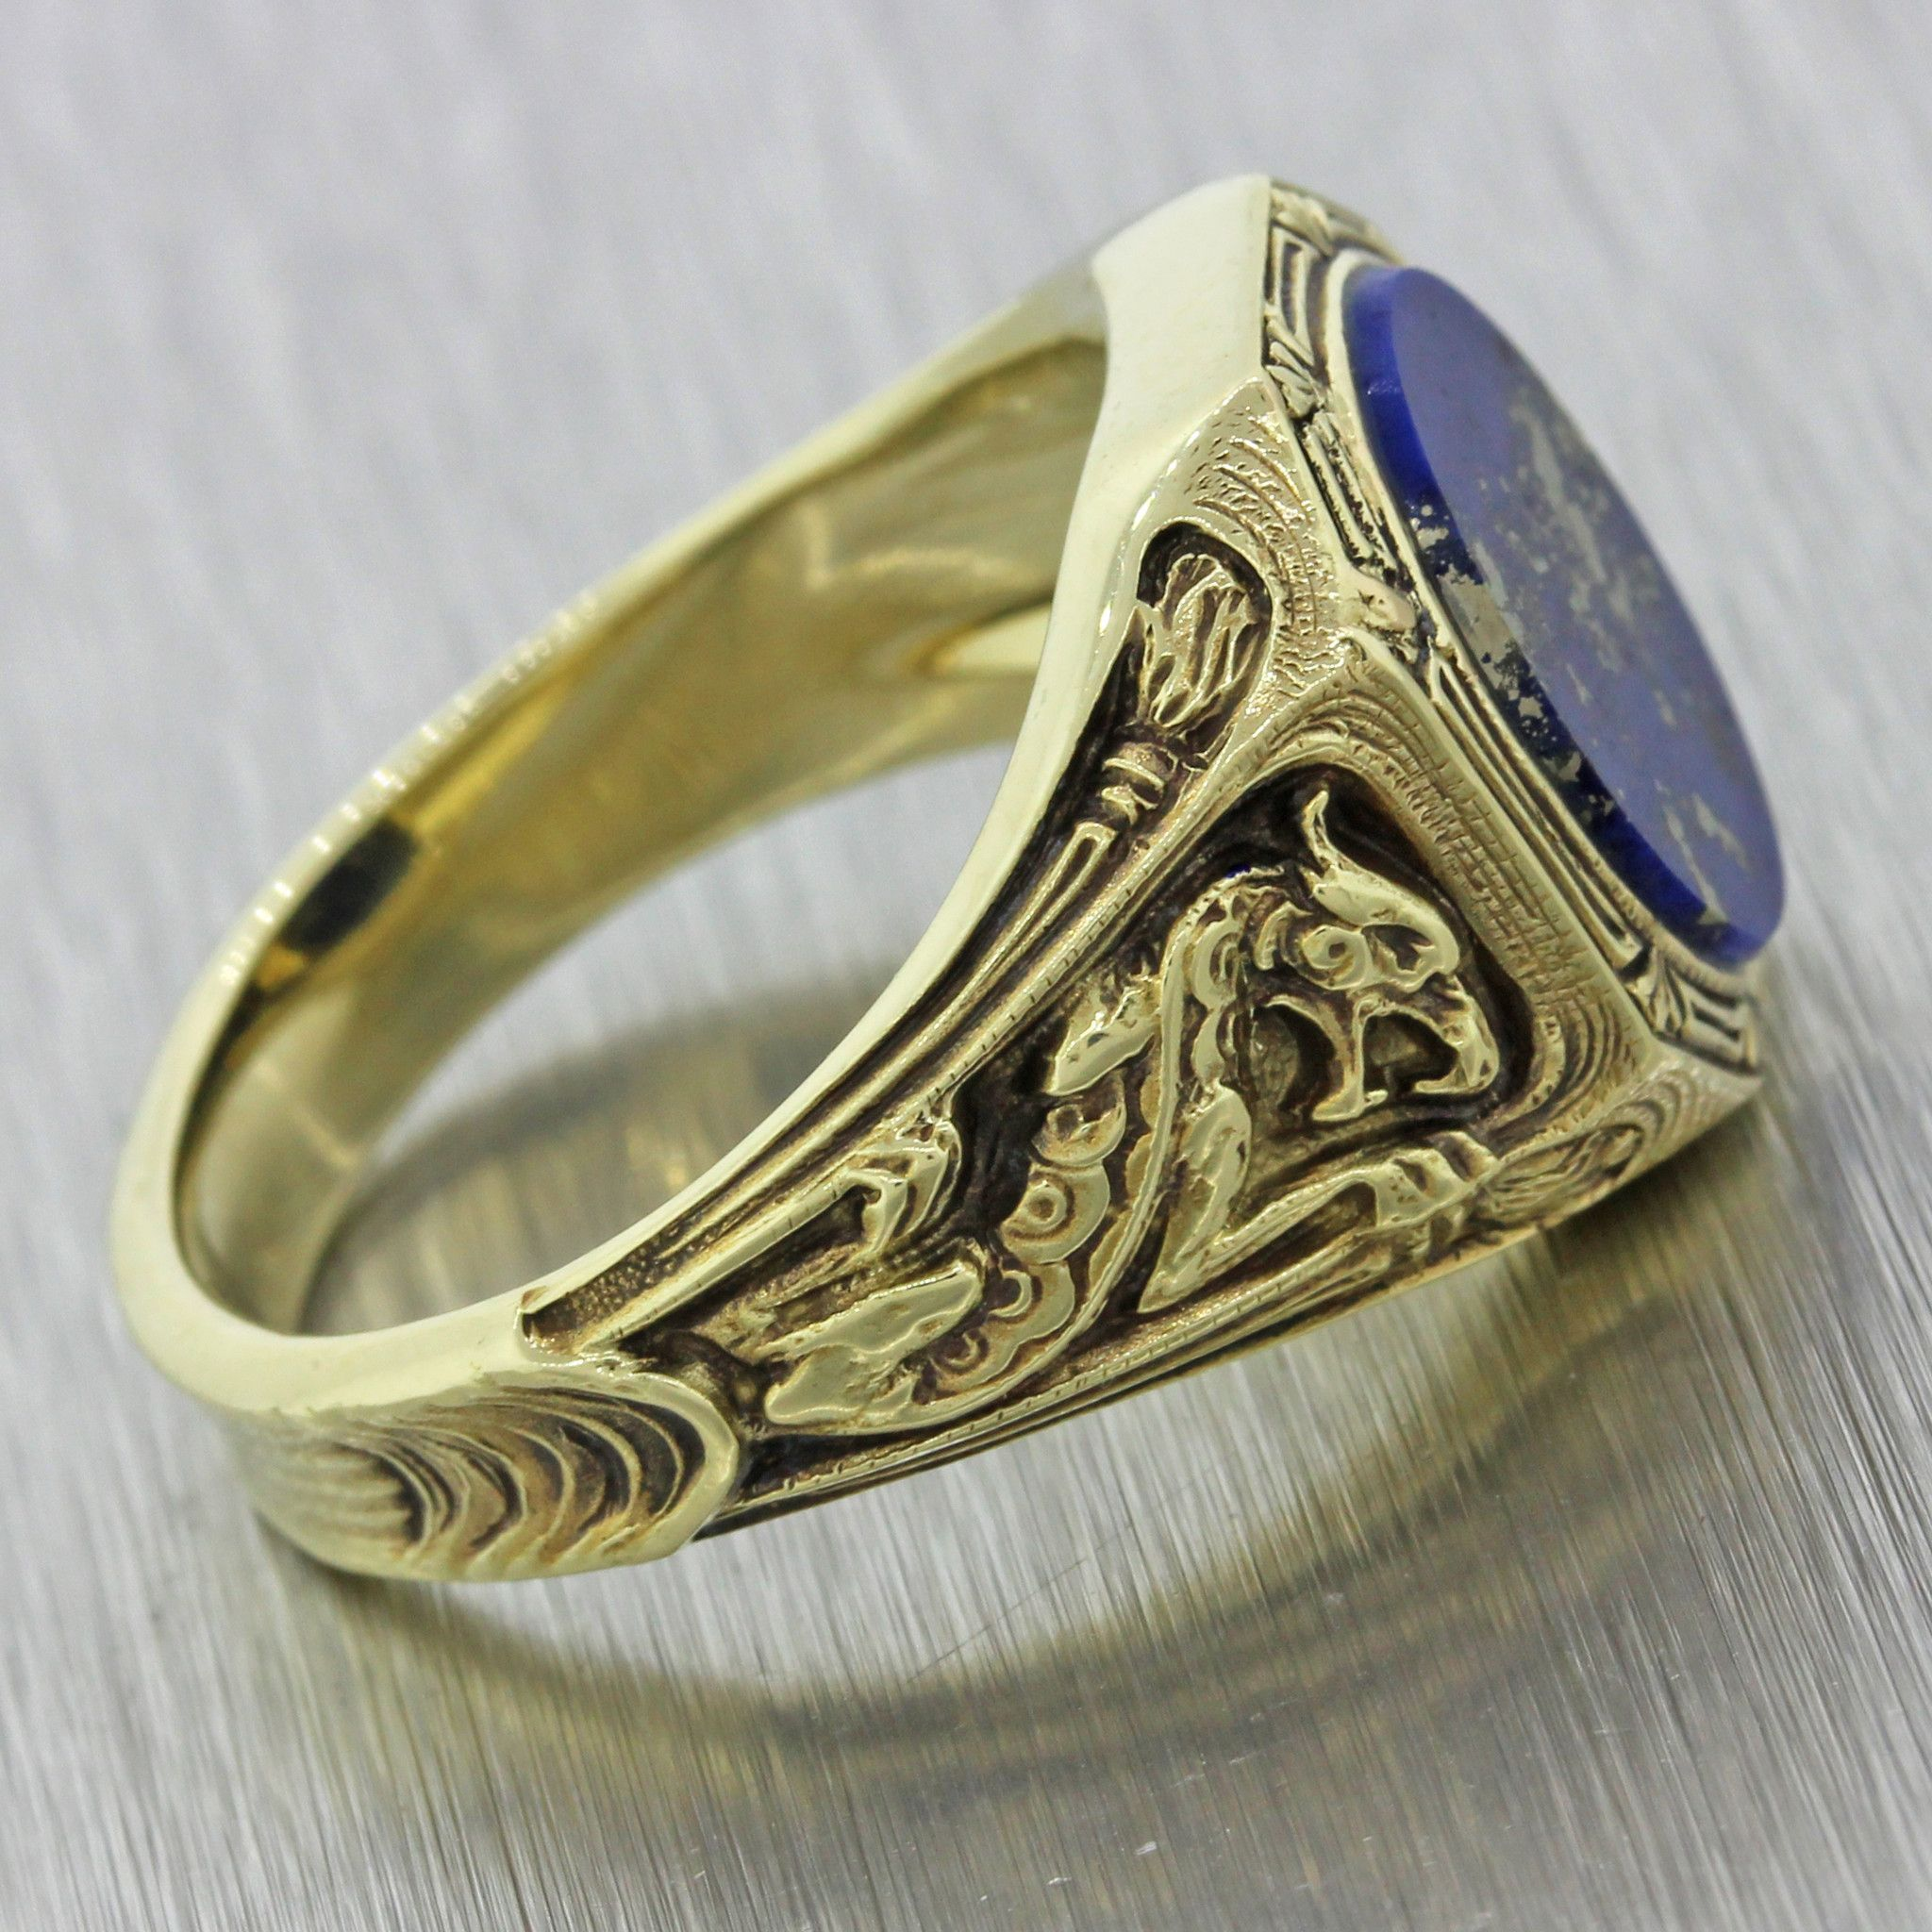 1960s Mens Vintage 14k Solid Yellow Gold Lapis Lazuli Dragon